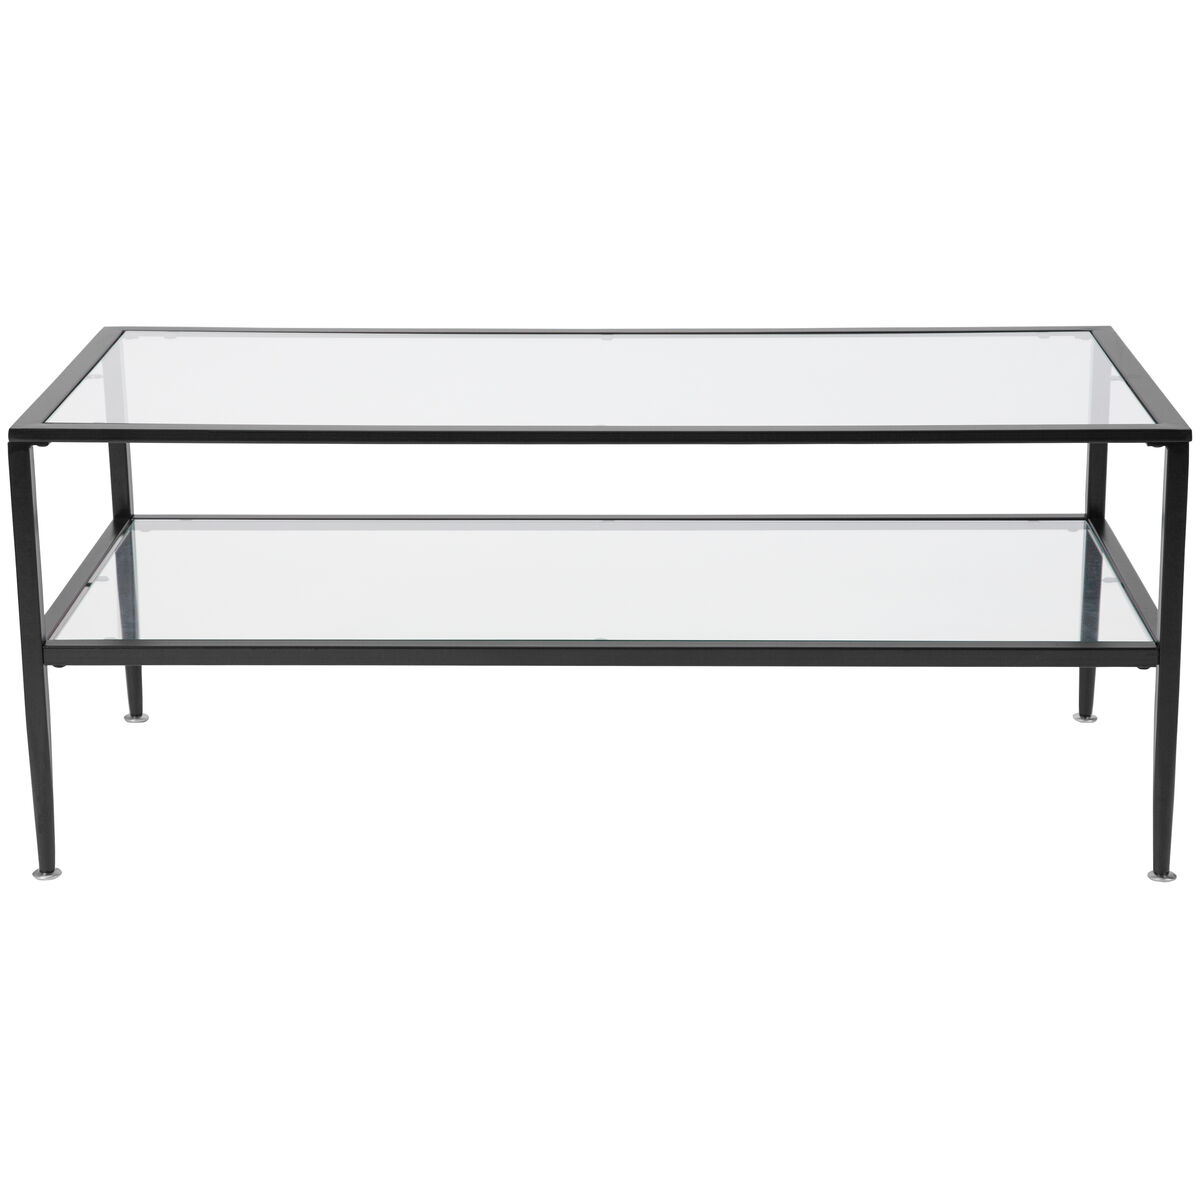 Black Glass Coffee Table Sale: Newport Collection Glass Coffee Table With Black Metal